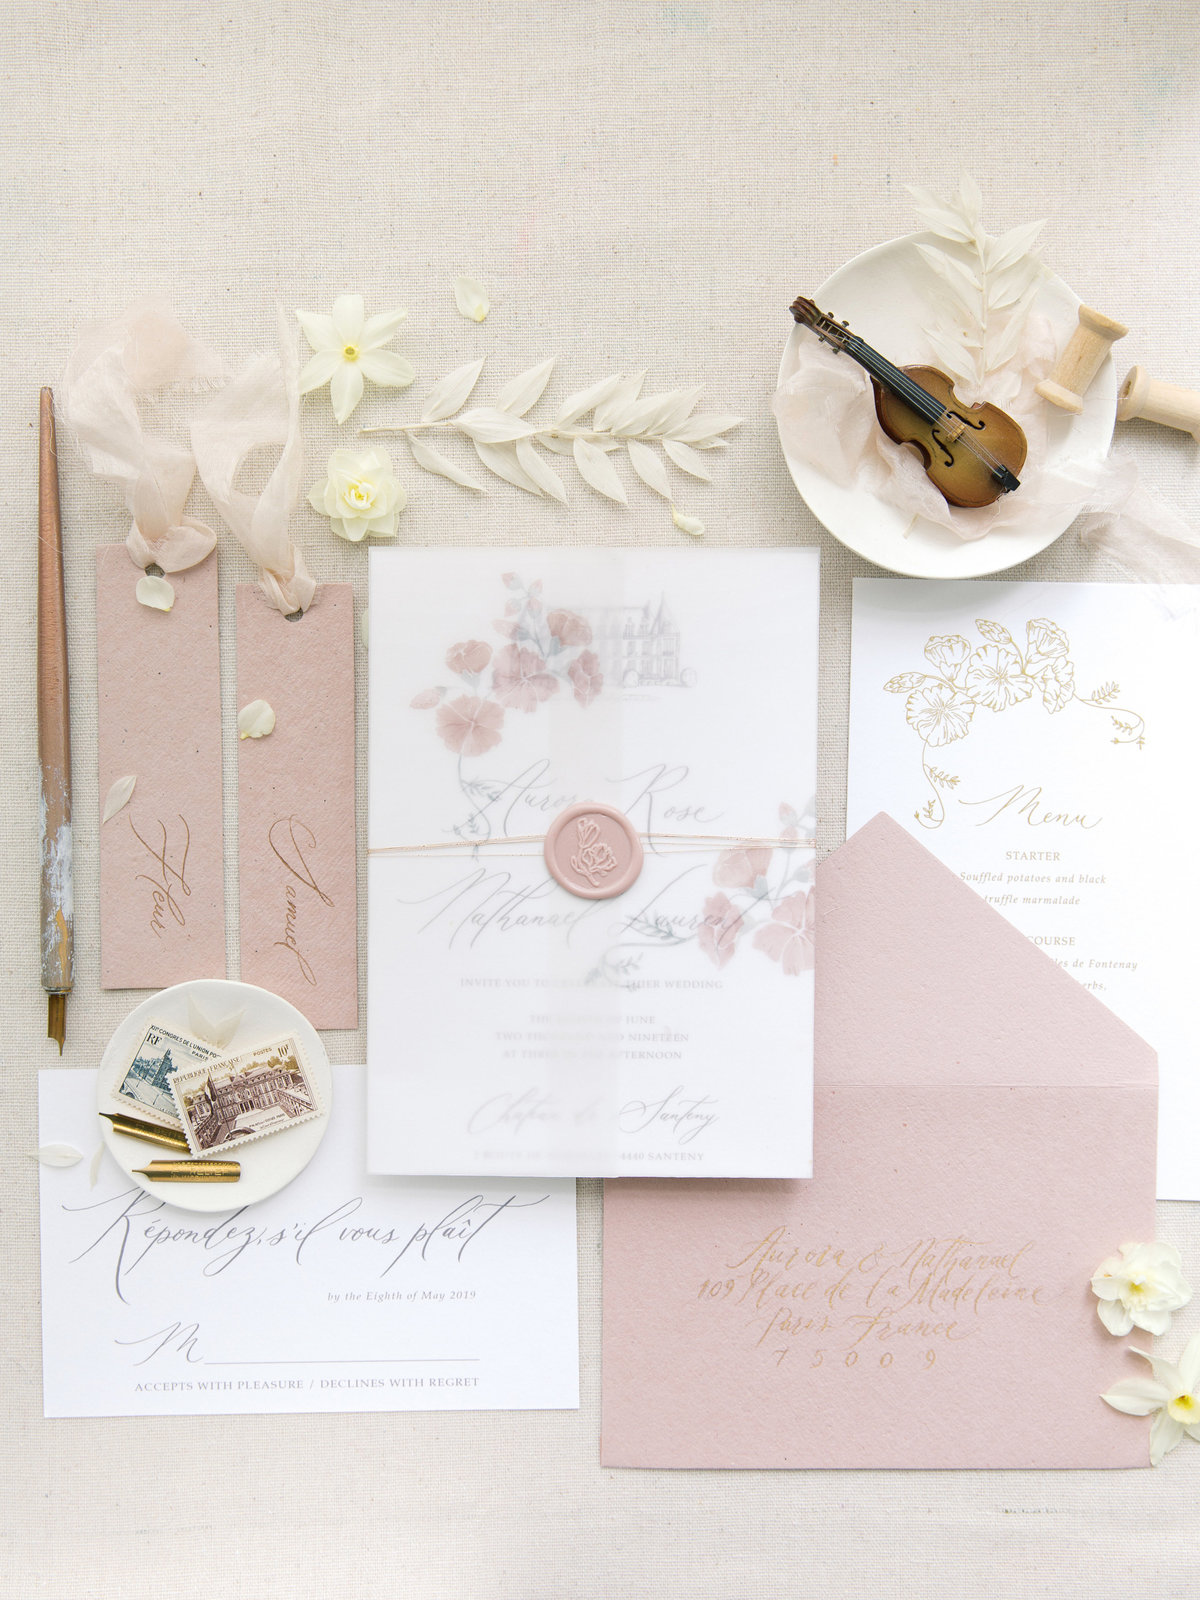 Luxurious french chateau wedding amelia soegijono0003